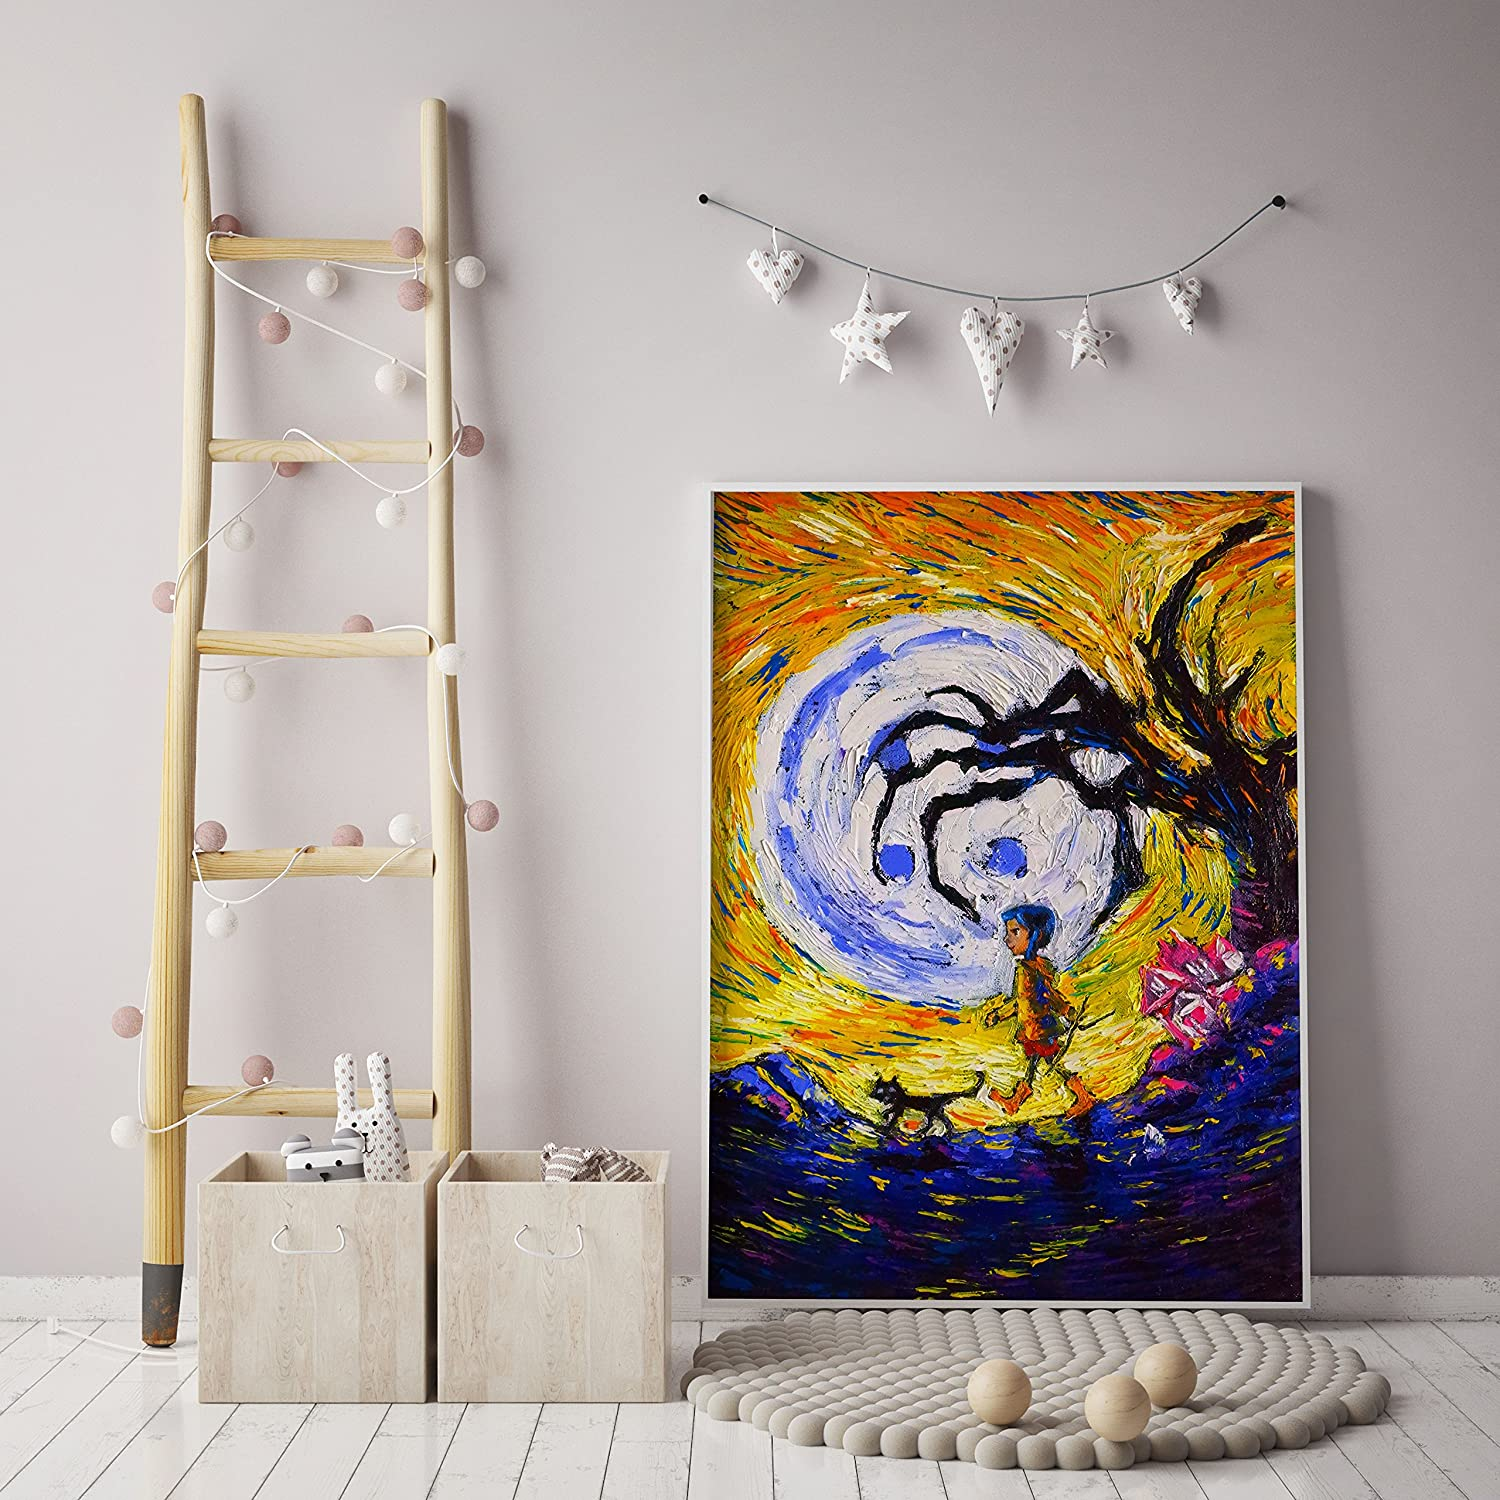 Uhomate Coraline Vincent Van Gogh Starry Night Posters Home Canvas Wall Art Print Poster Baby Gift Nursery Decor Living Room Wall Decor A131 8X10